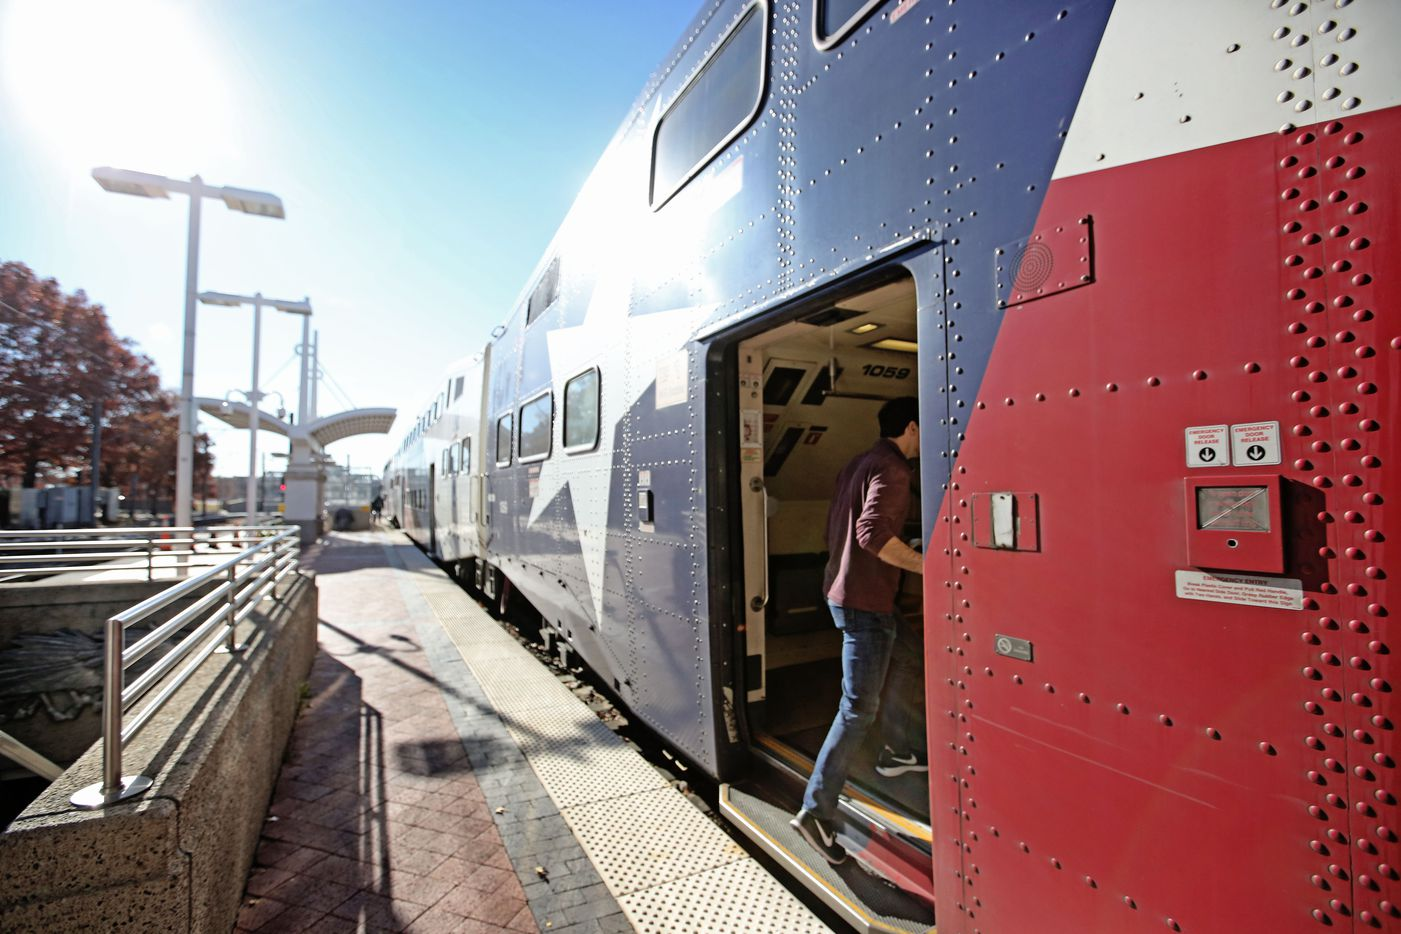 Going to Fort Worth from Dallas' Union Station was an easy trip once the Curious Texas team learned the shortest route.